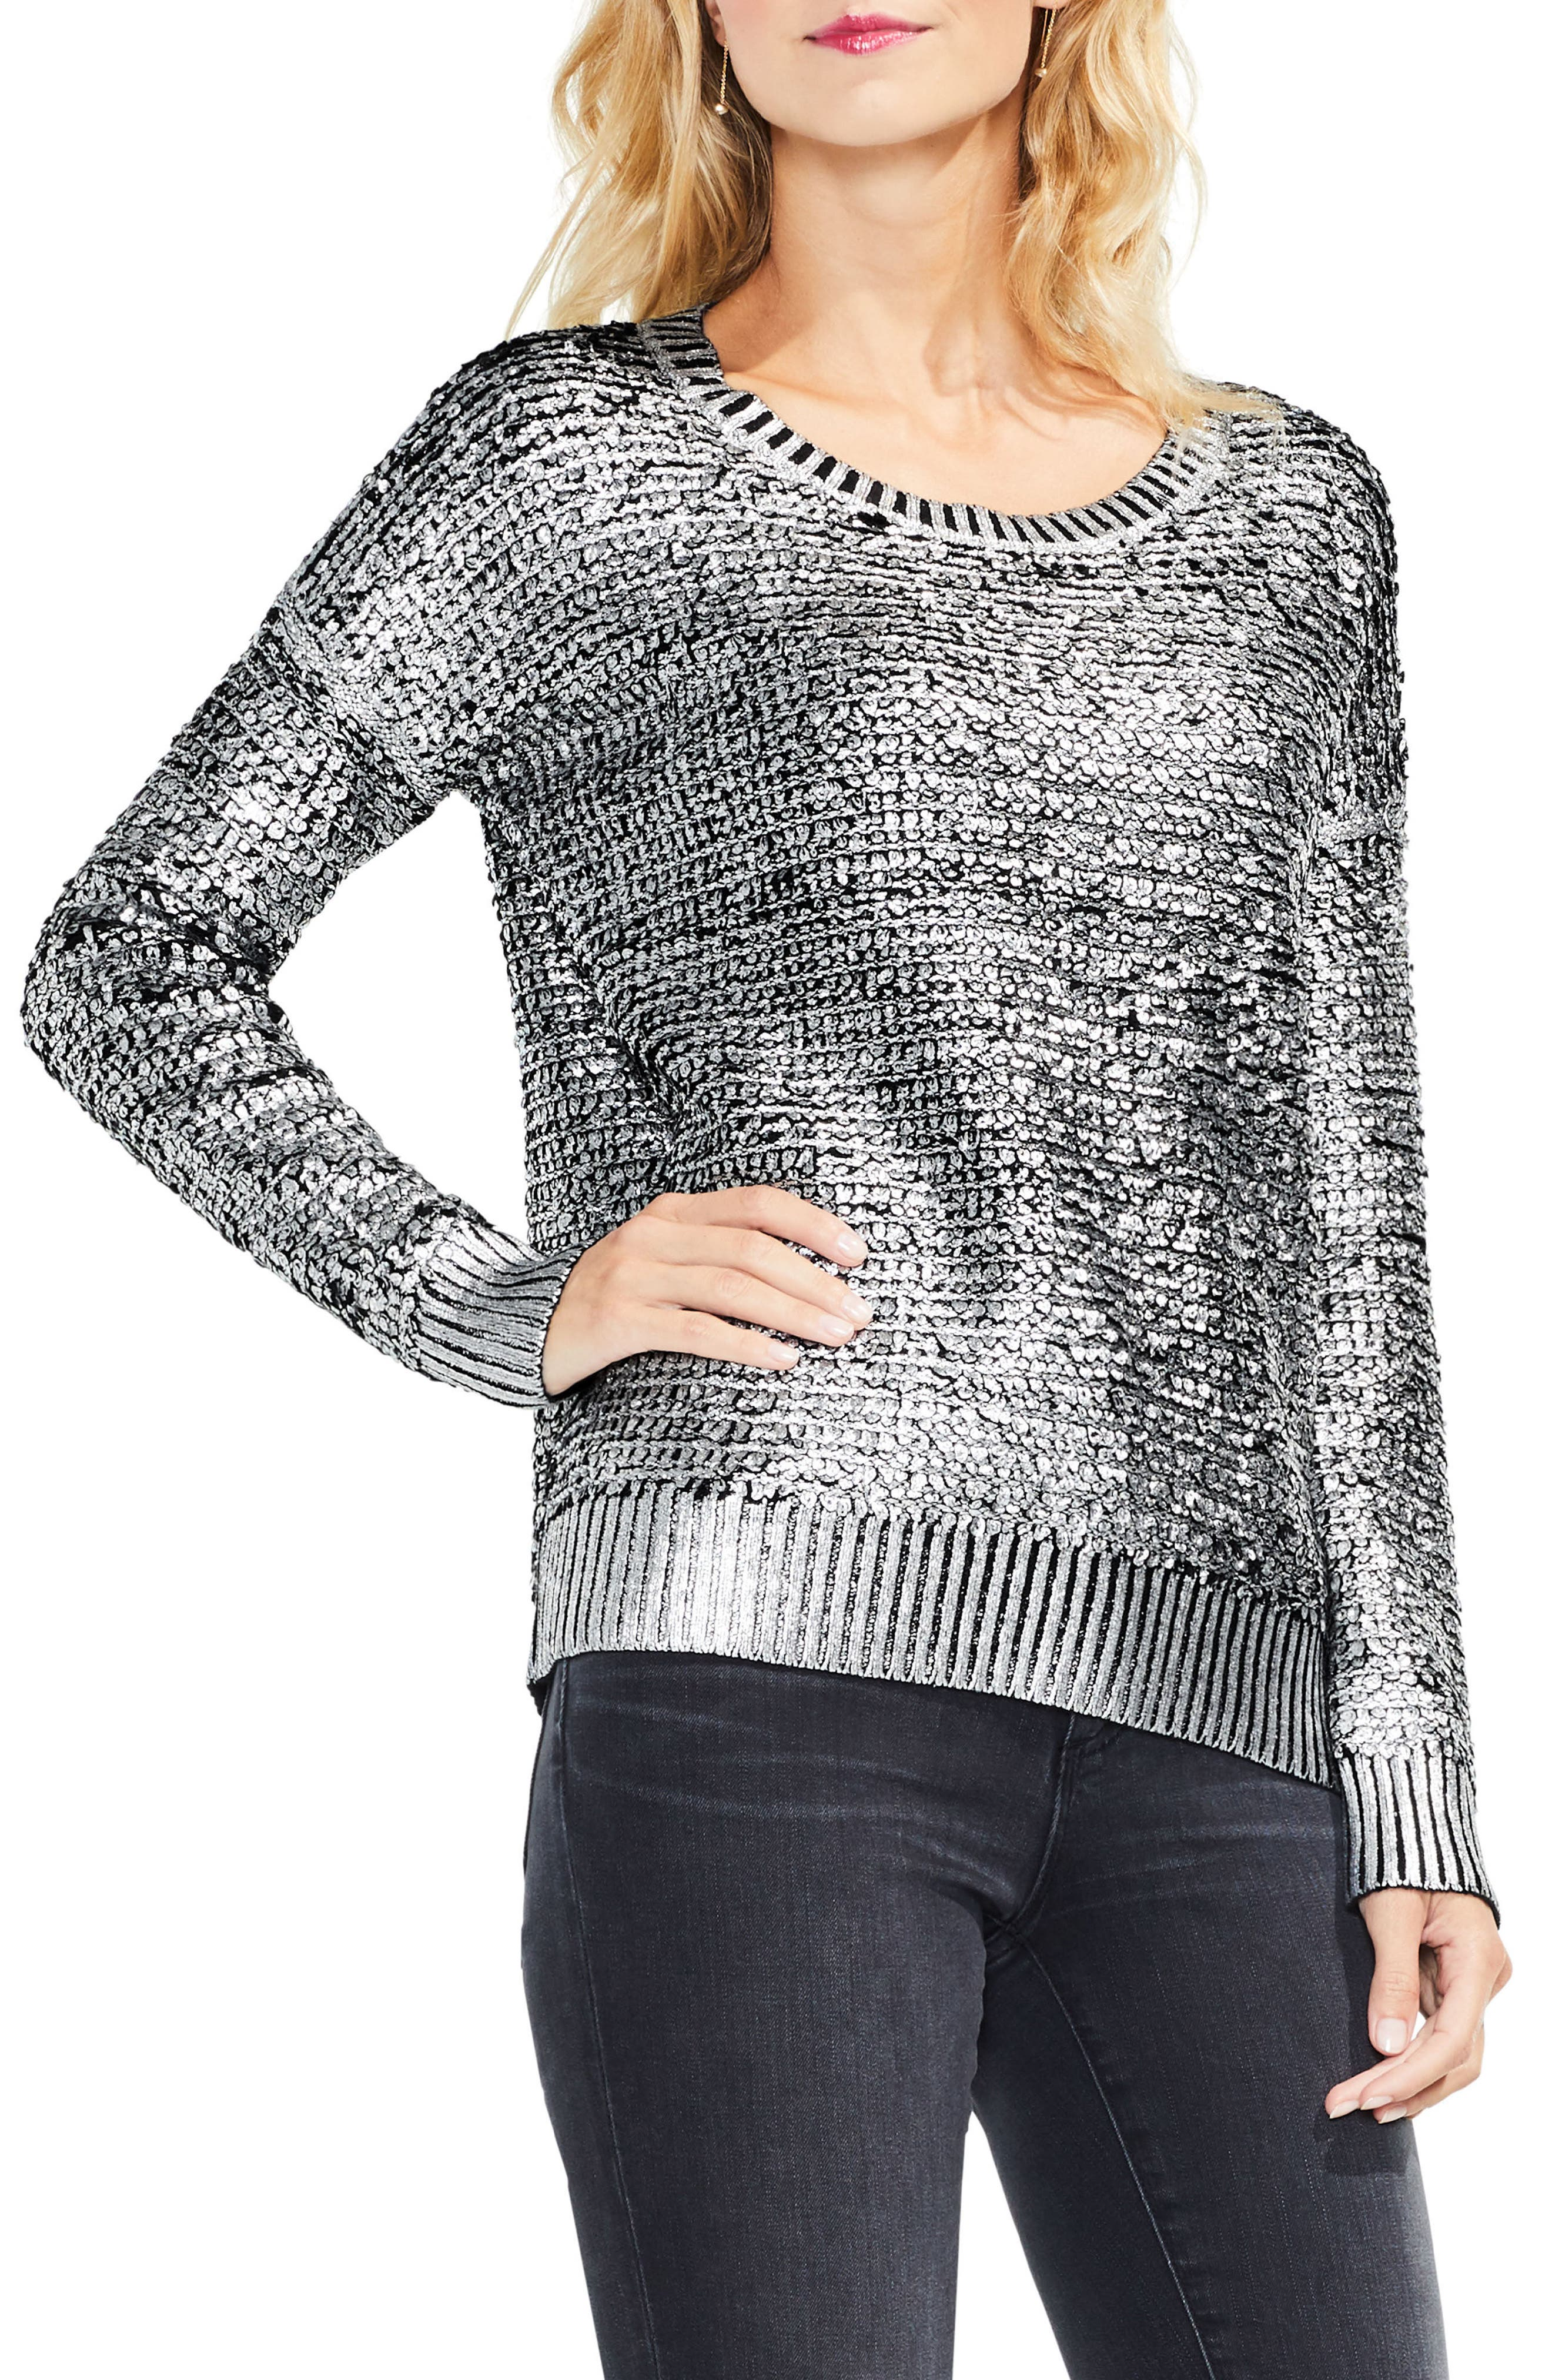 Loop Stitch Foil Print Sweater,                         Main,                         color, 006